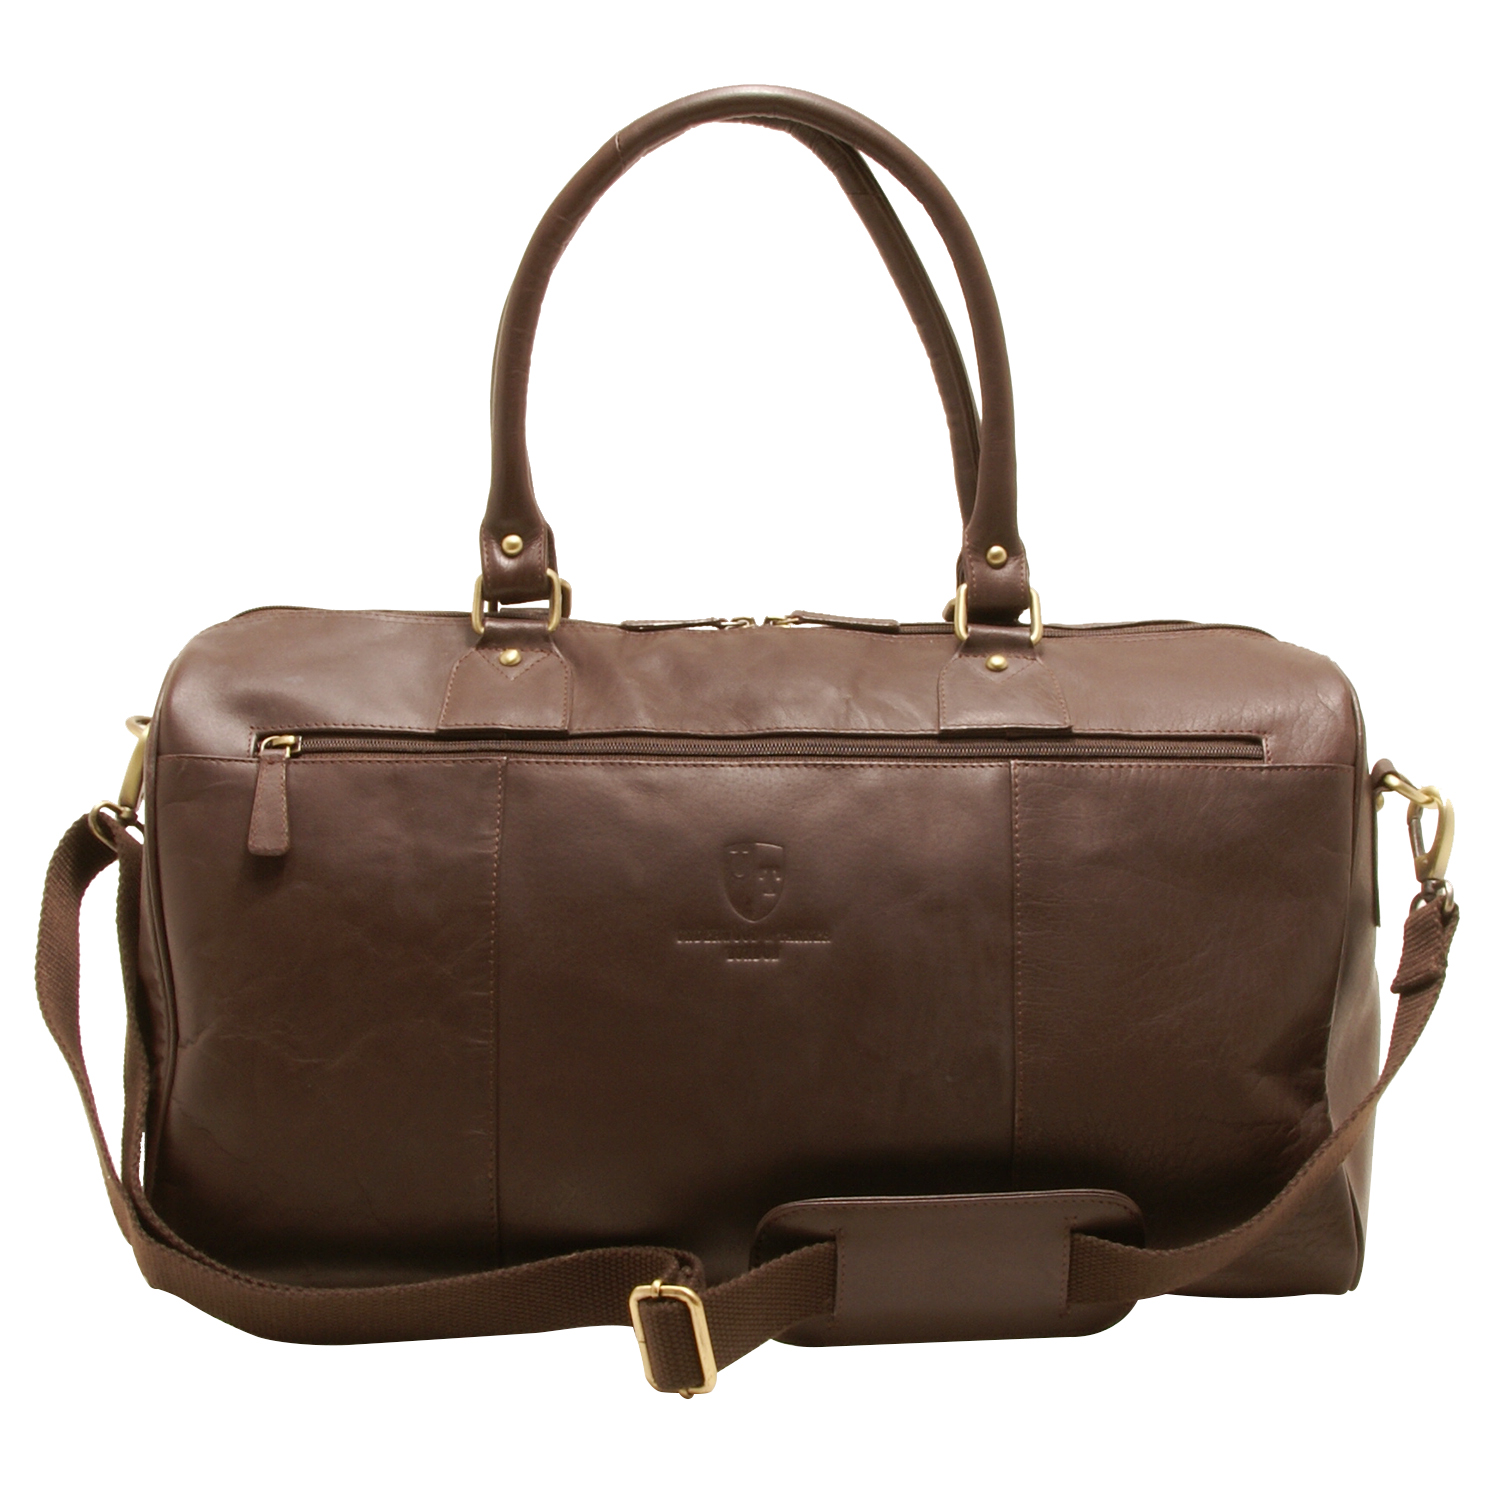 Underwood & Tanner – Brown George Shoreditch Leather Travel Holdall